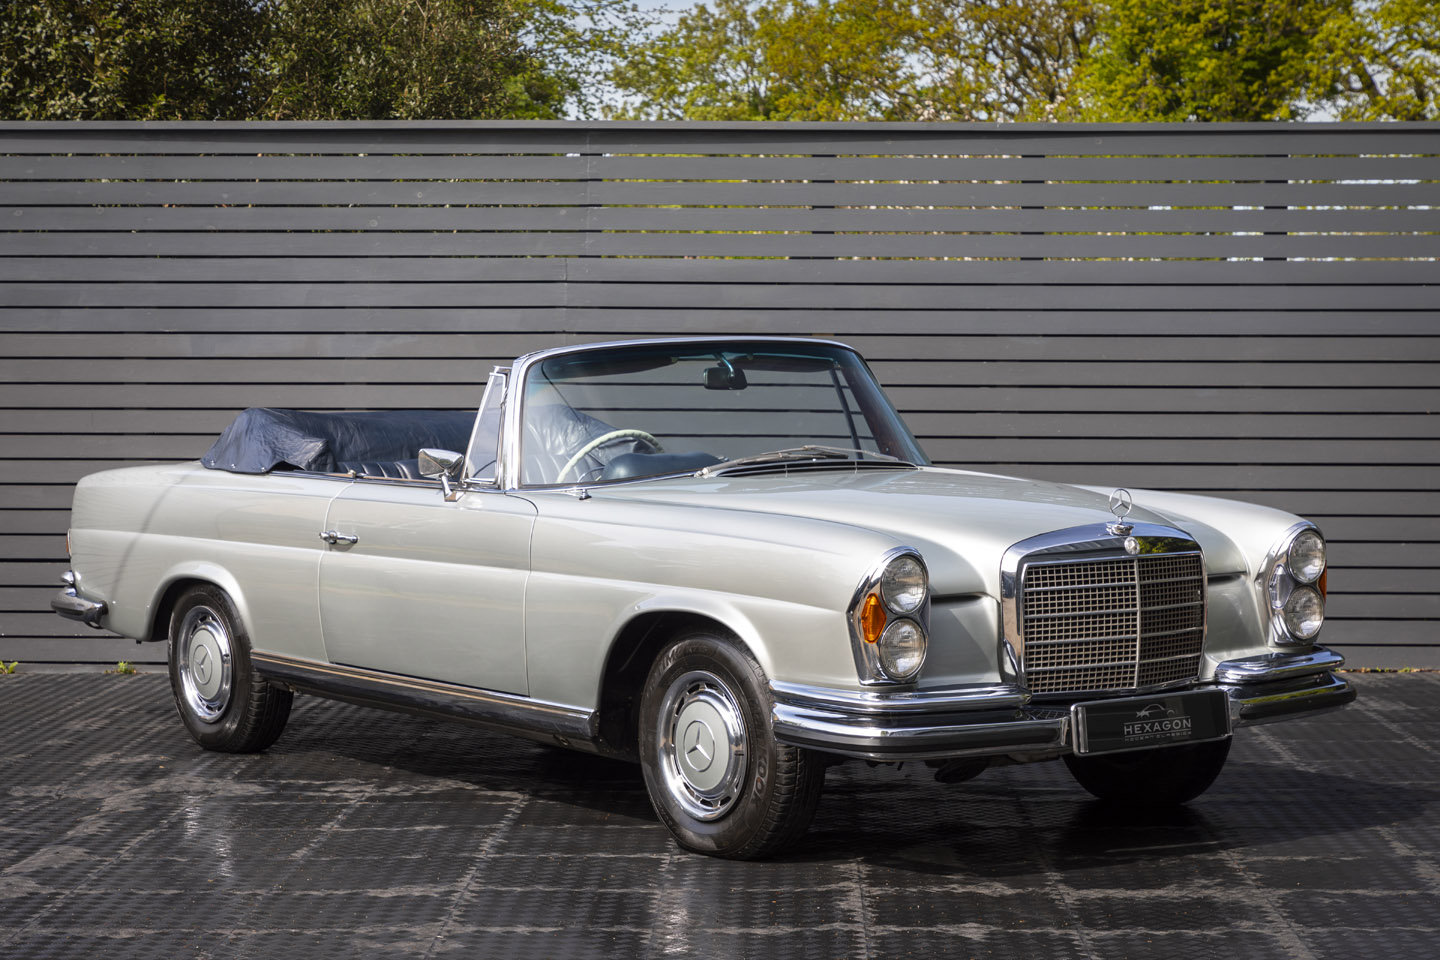 1972 Mercedes-Benz 280 SE Cabriolet 3.5 For Sale (picture 1 of 6)